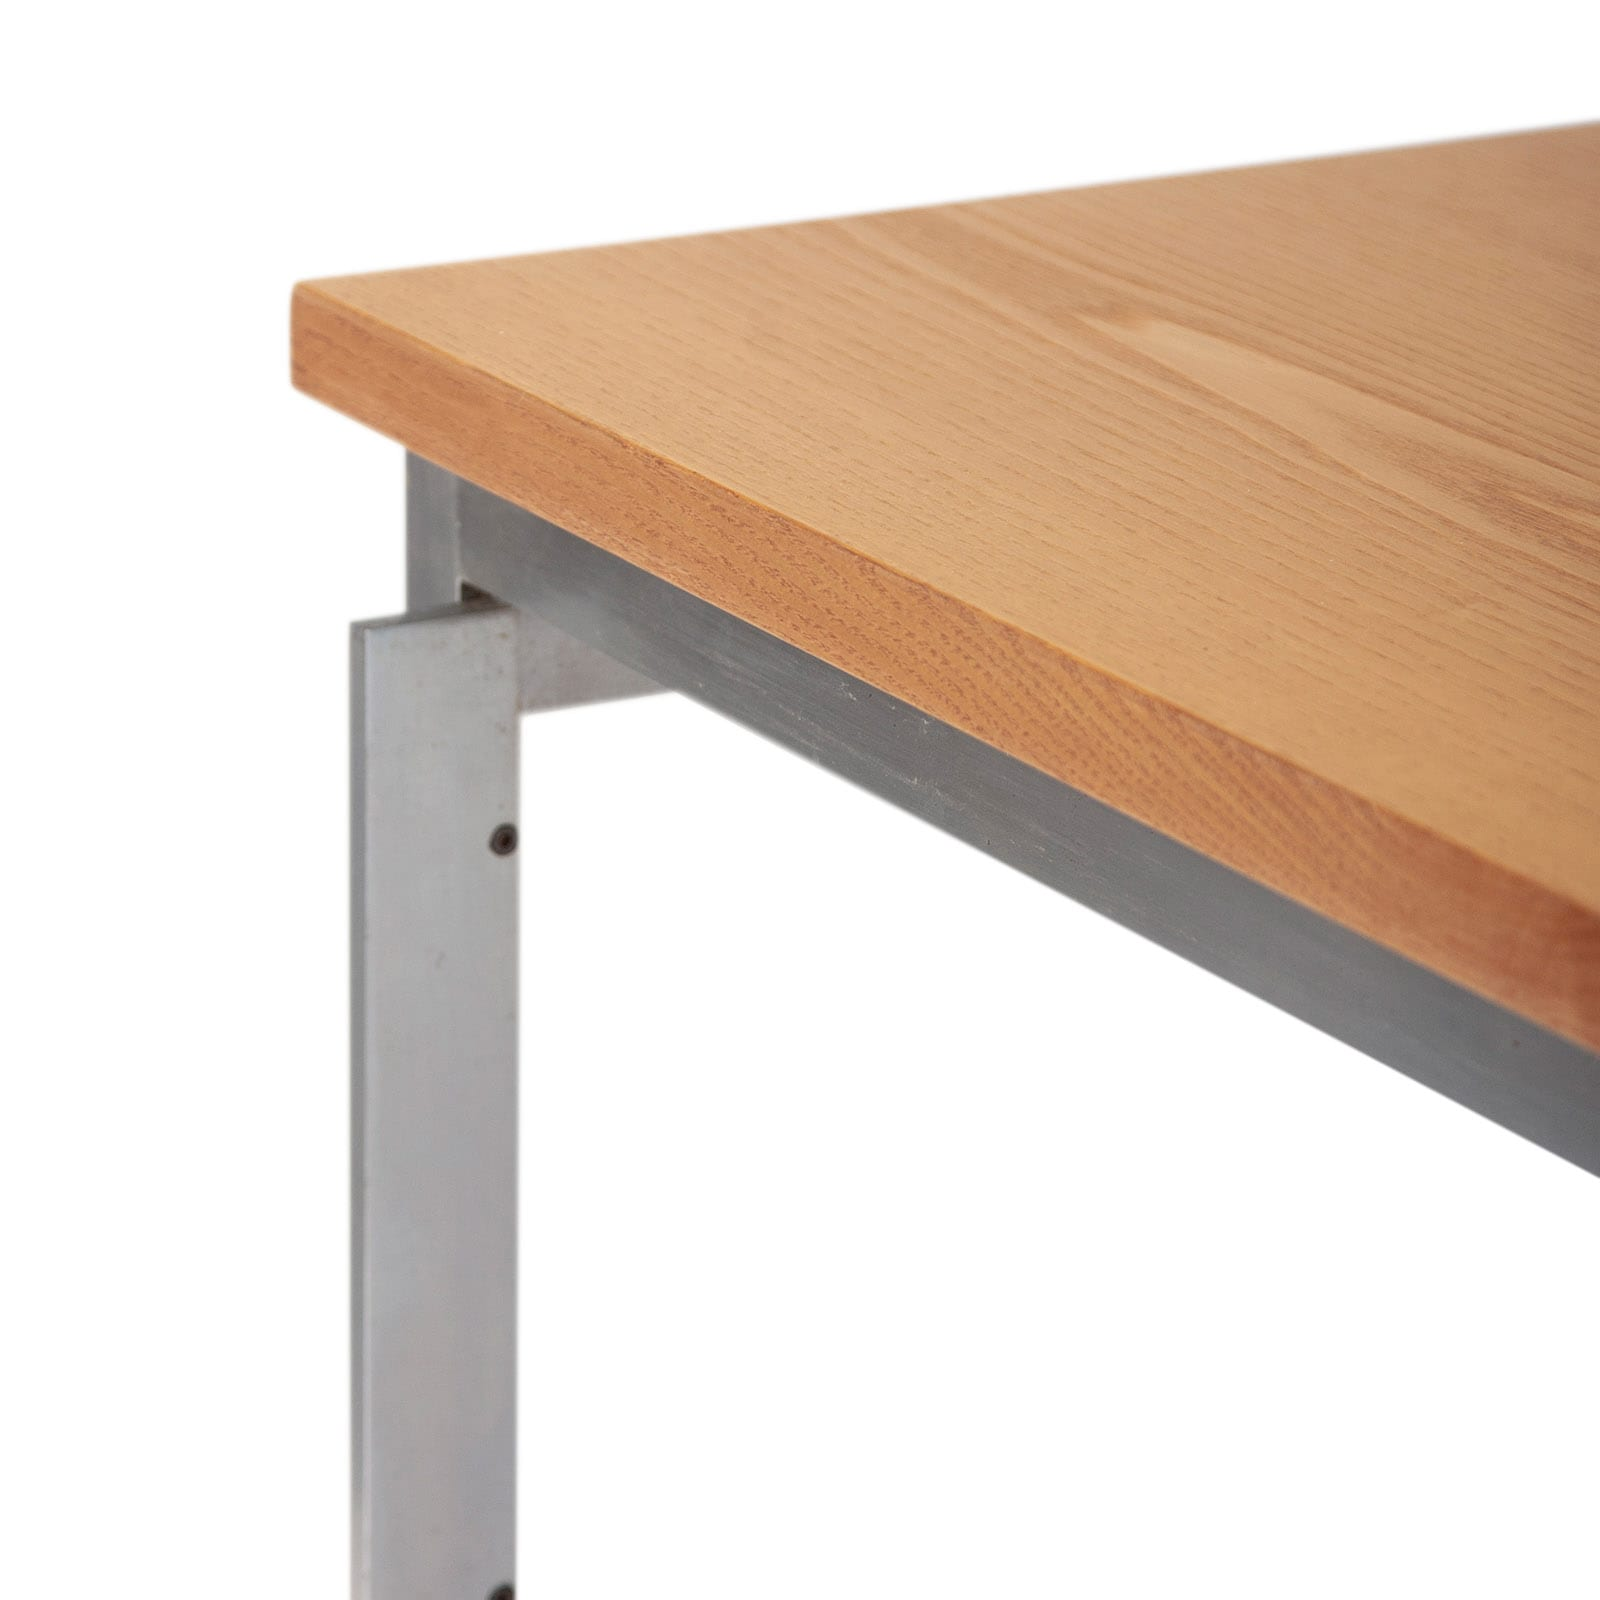 Large worktable in ash